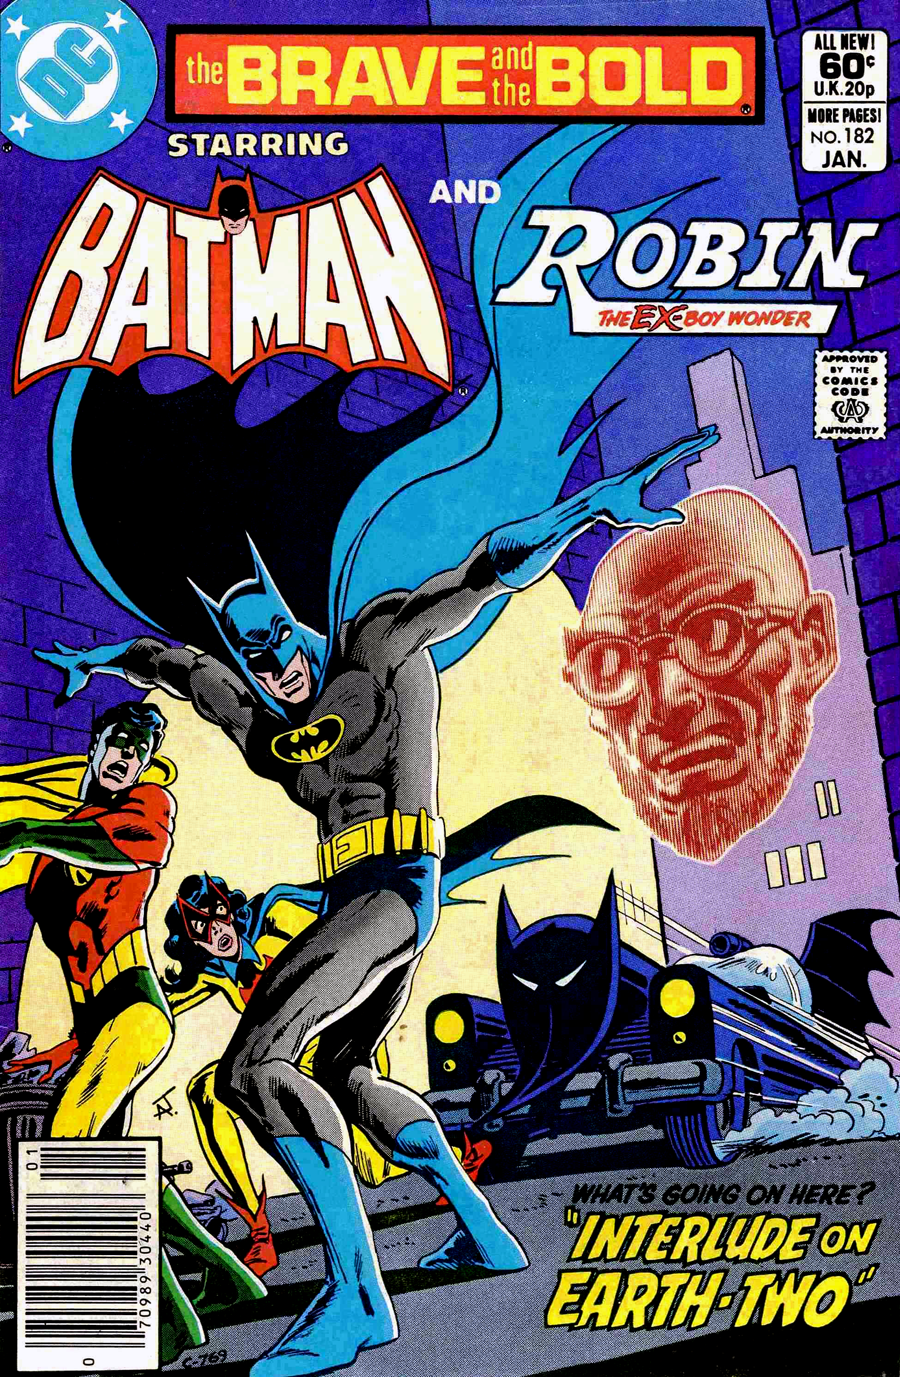 Brave and the Bold #182 cover by Jim Aparo